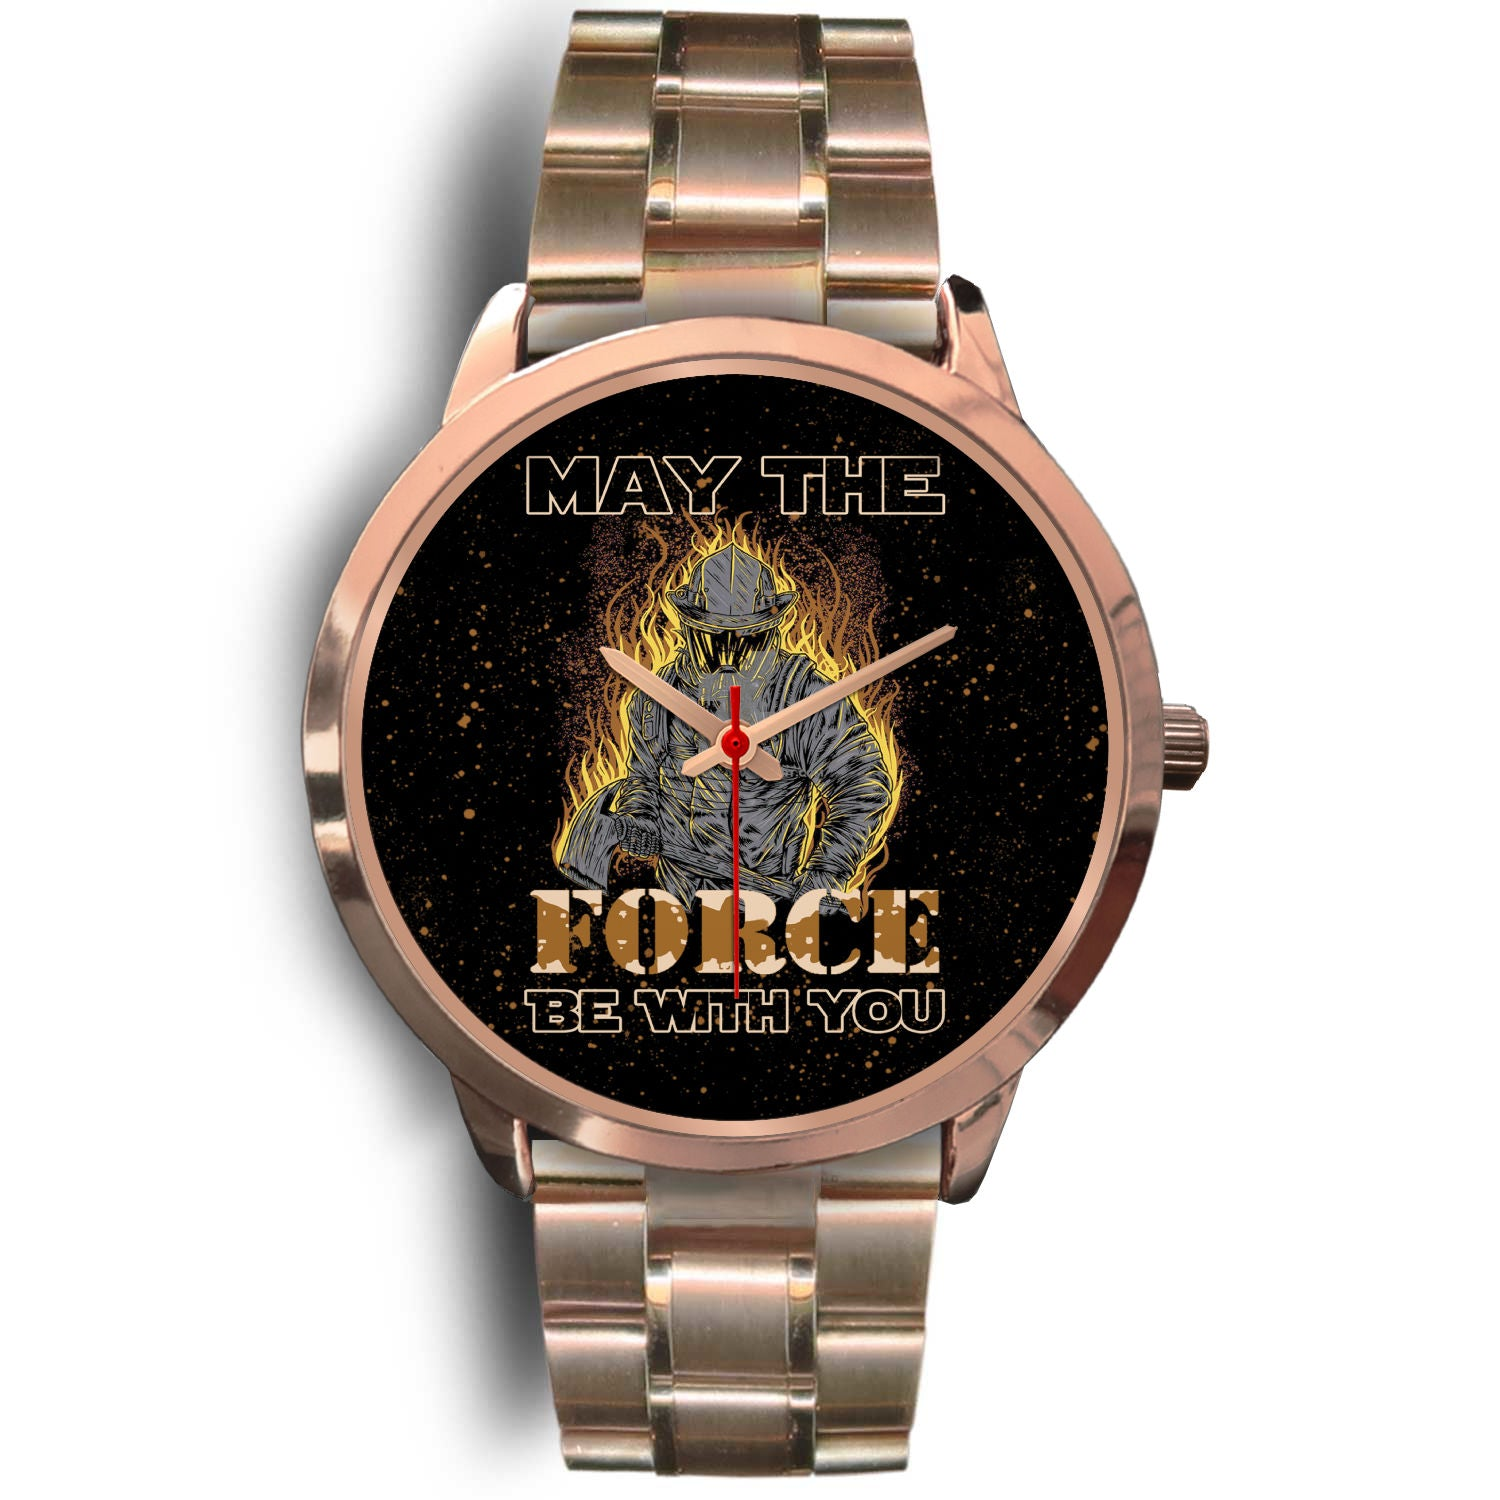 VIRA ROSE GOLD STAINLESS STEEL WATCH FOR FIREFIGHTER